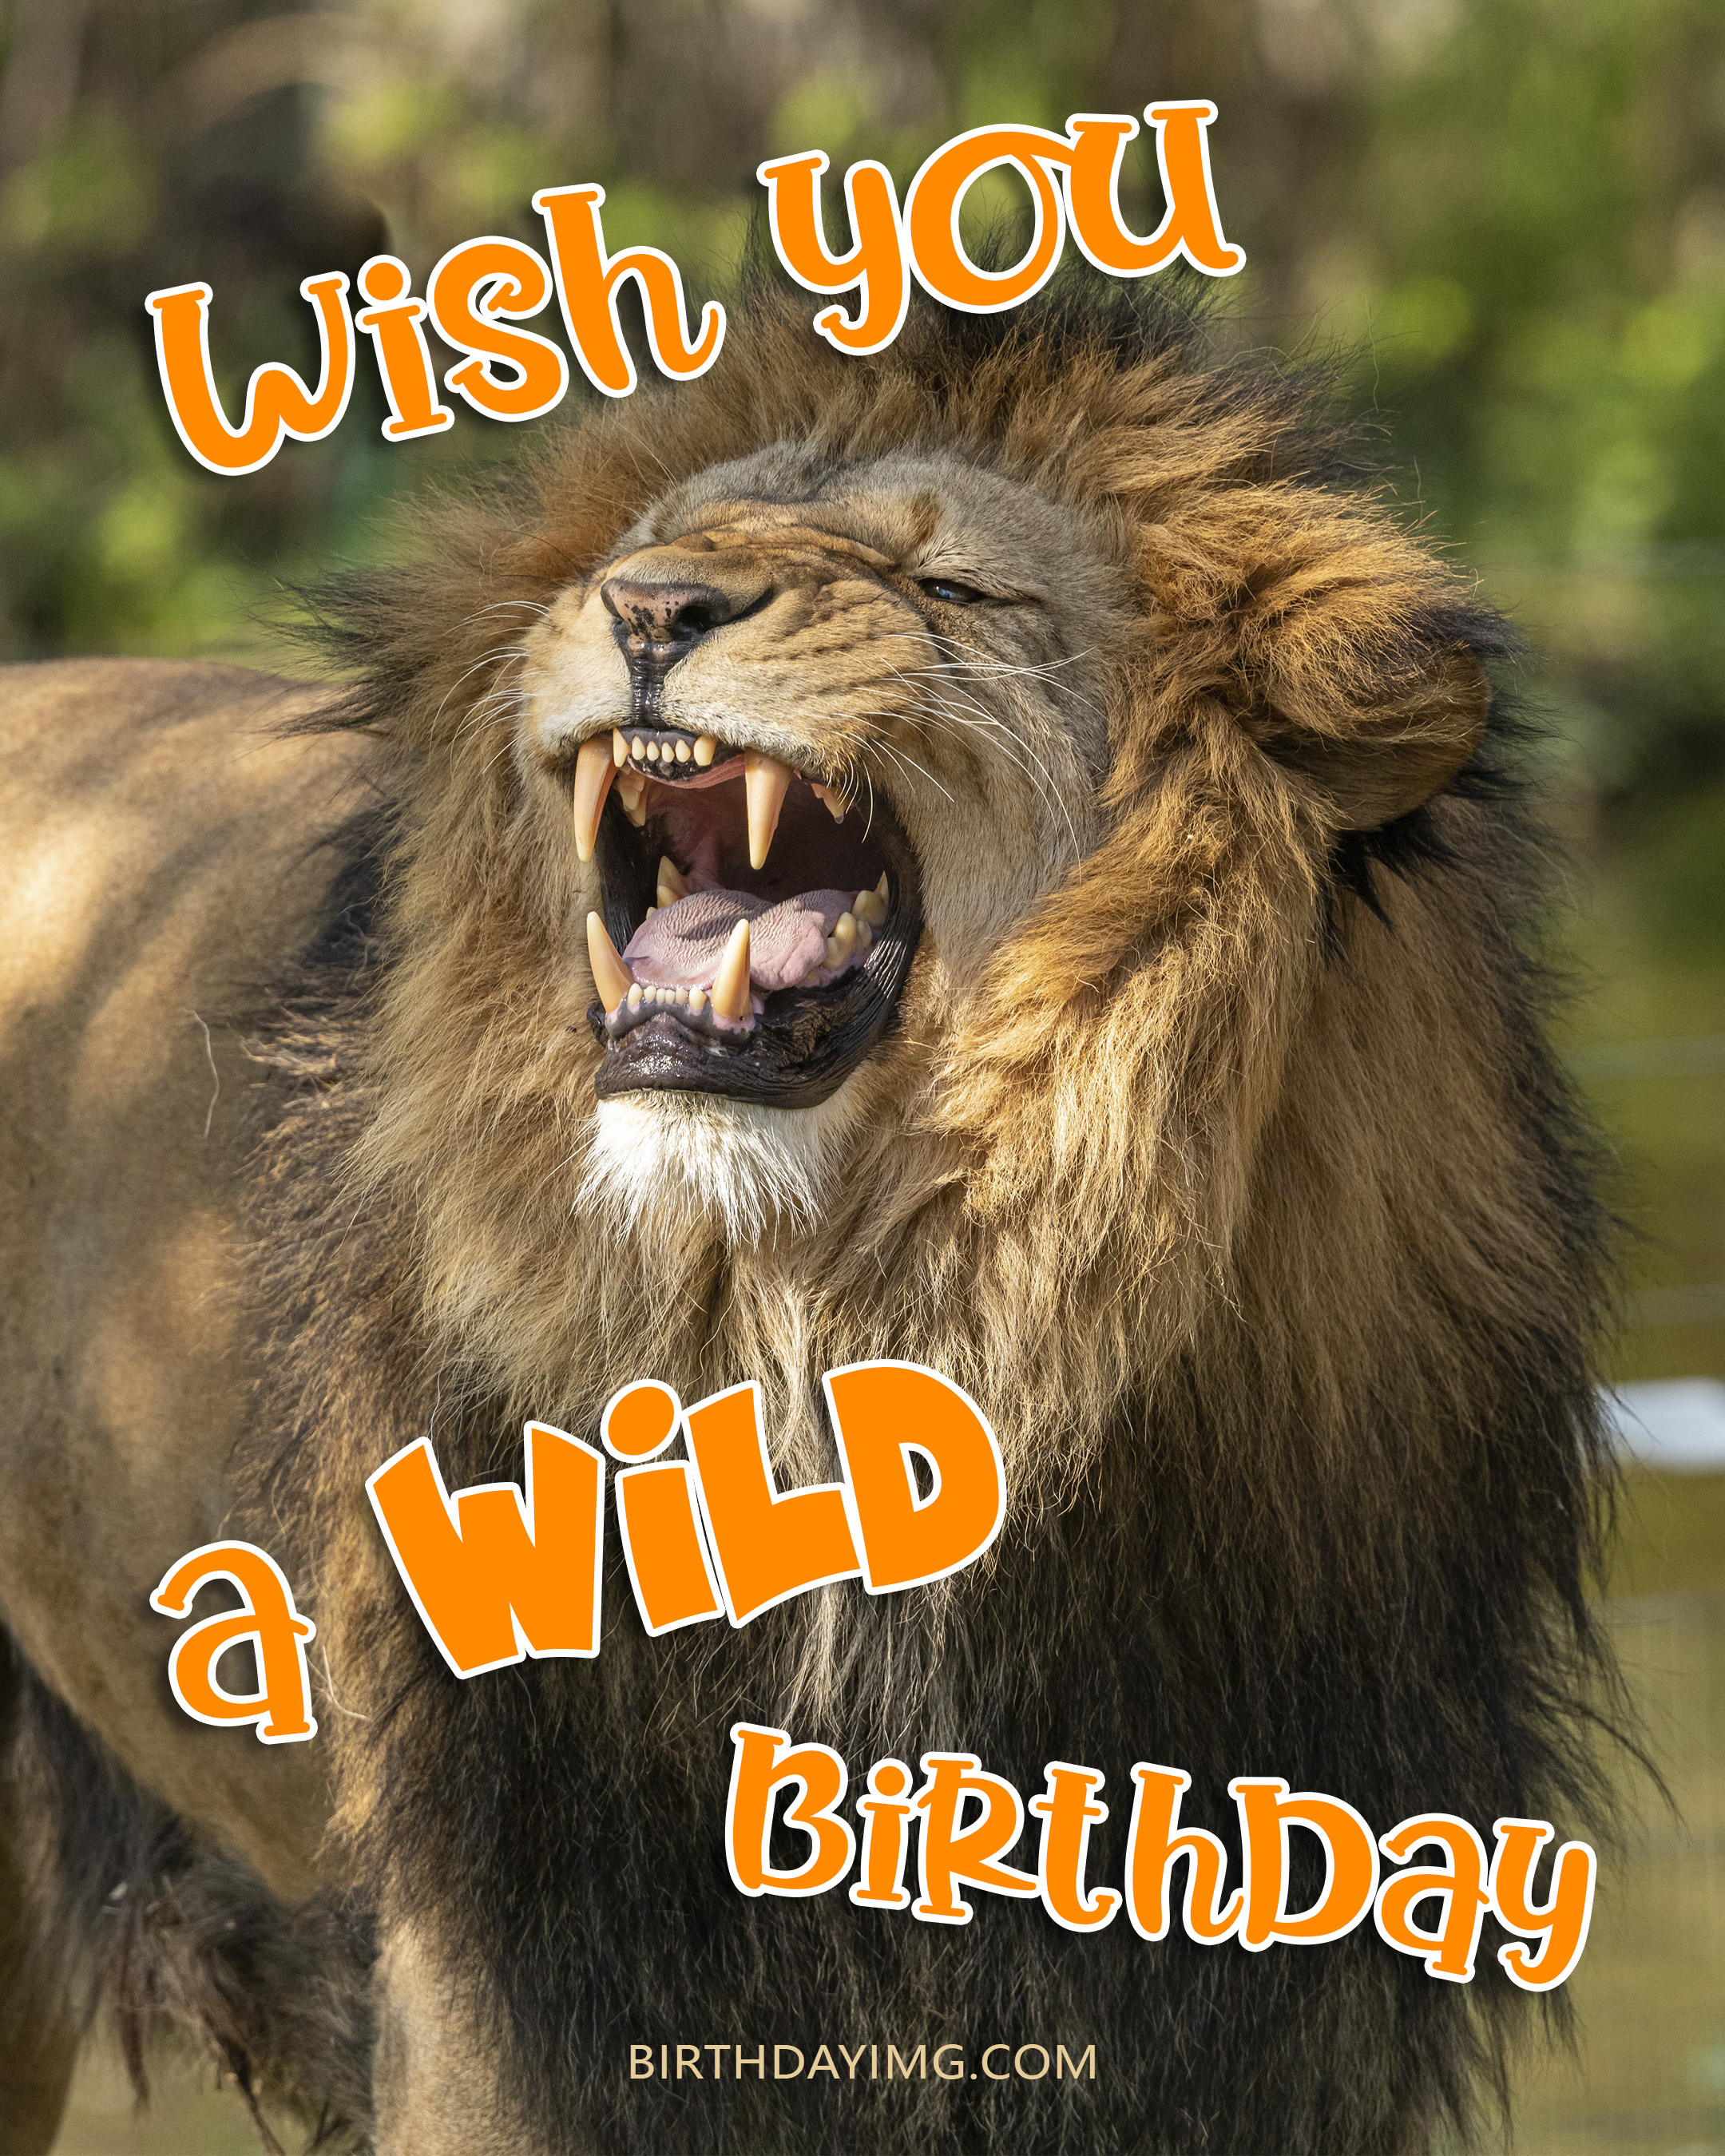 Free Funny Happy Birthday Images For Him (Man) With Lion - birthdayimg.com